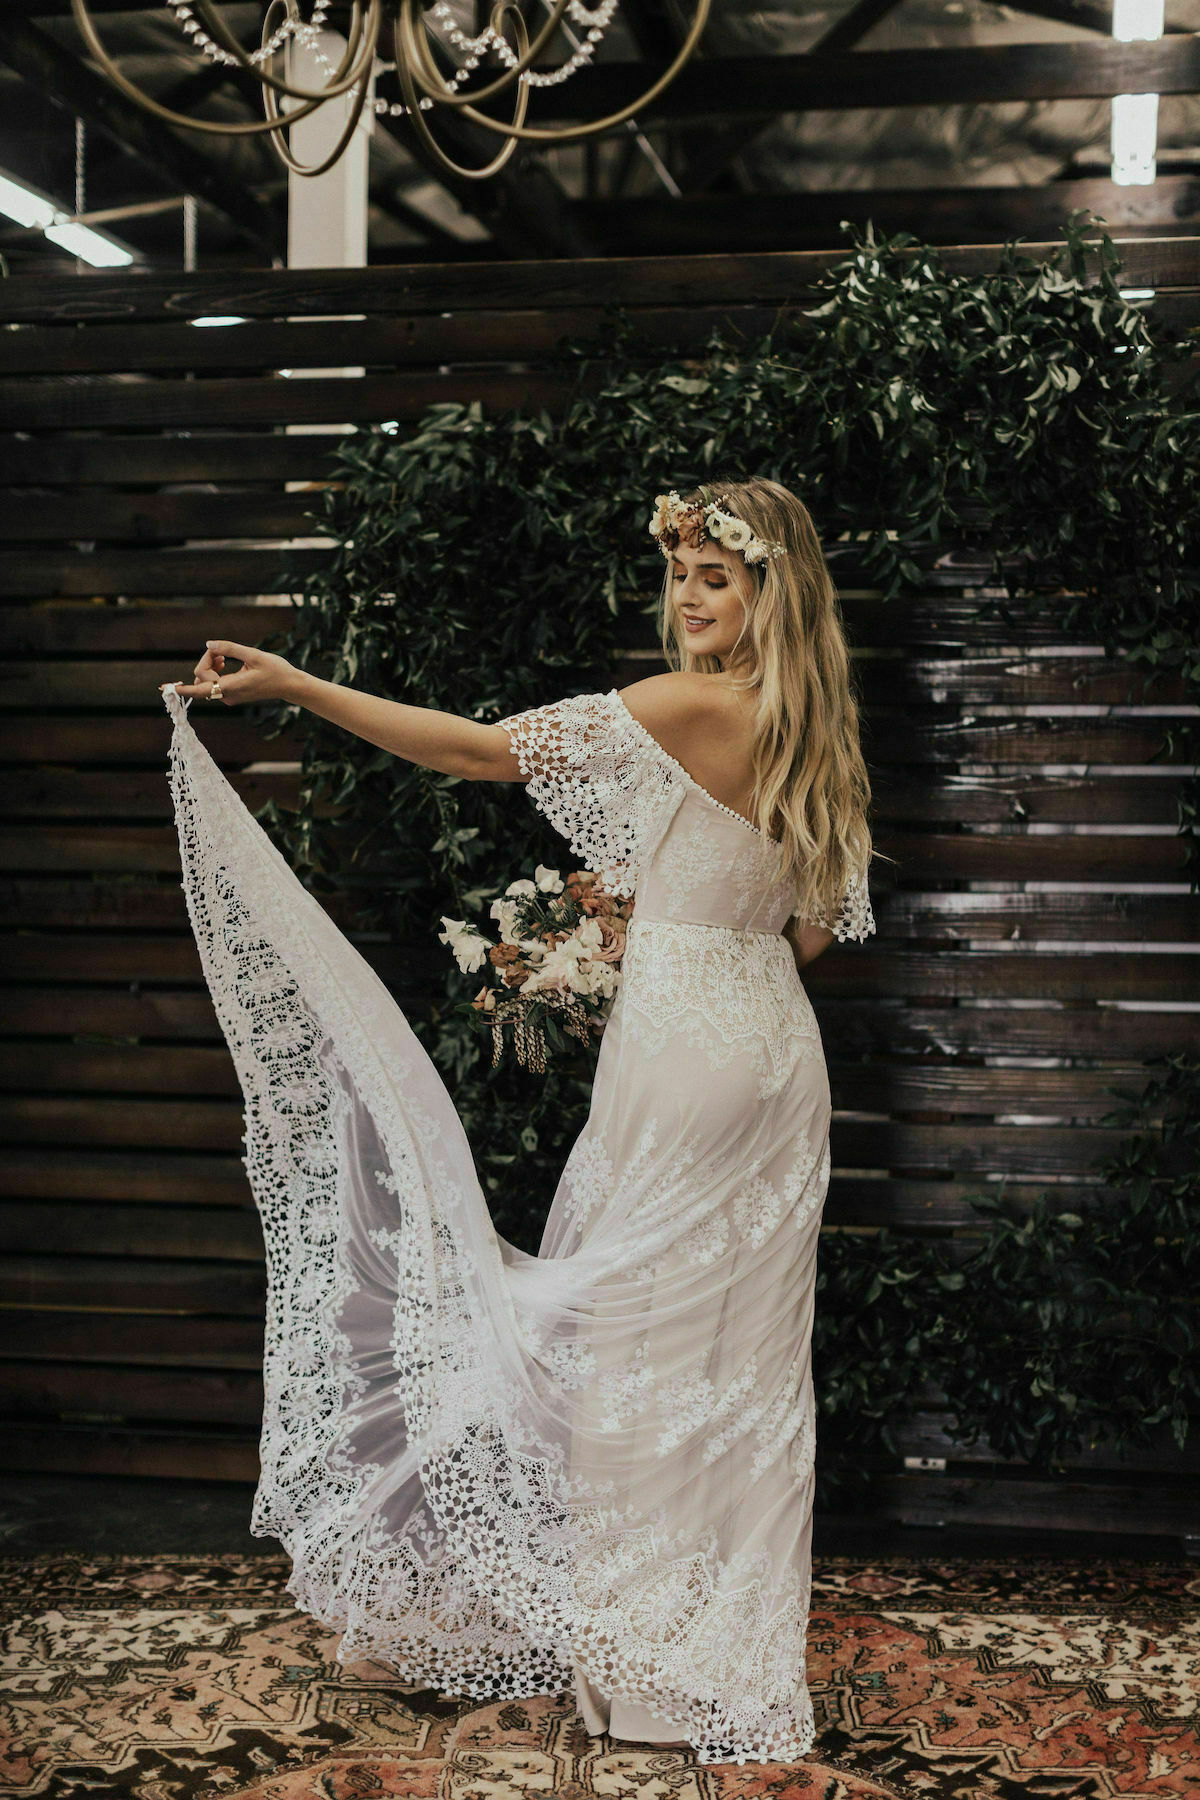 Dreamers-and-Lovers-bohemian-lace-wedding-dress-made-from-mesh-applique-lace